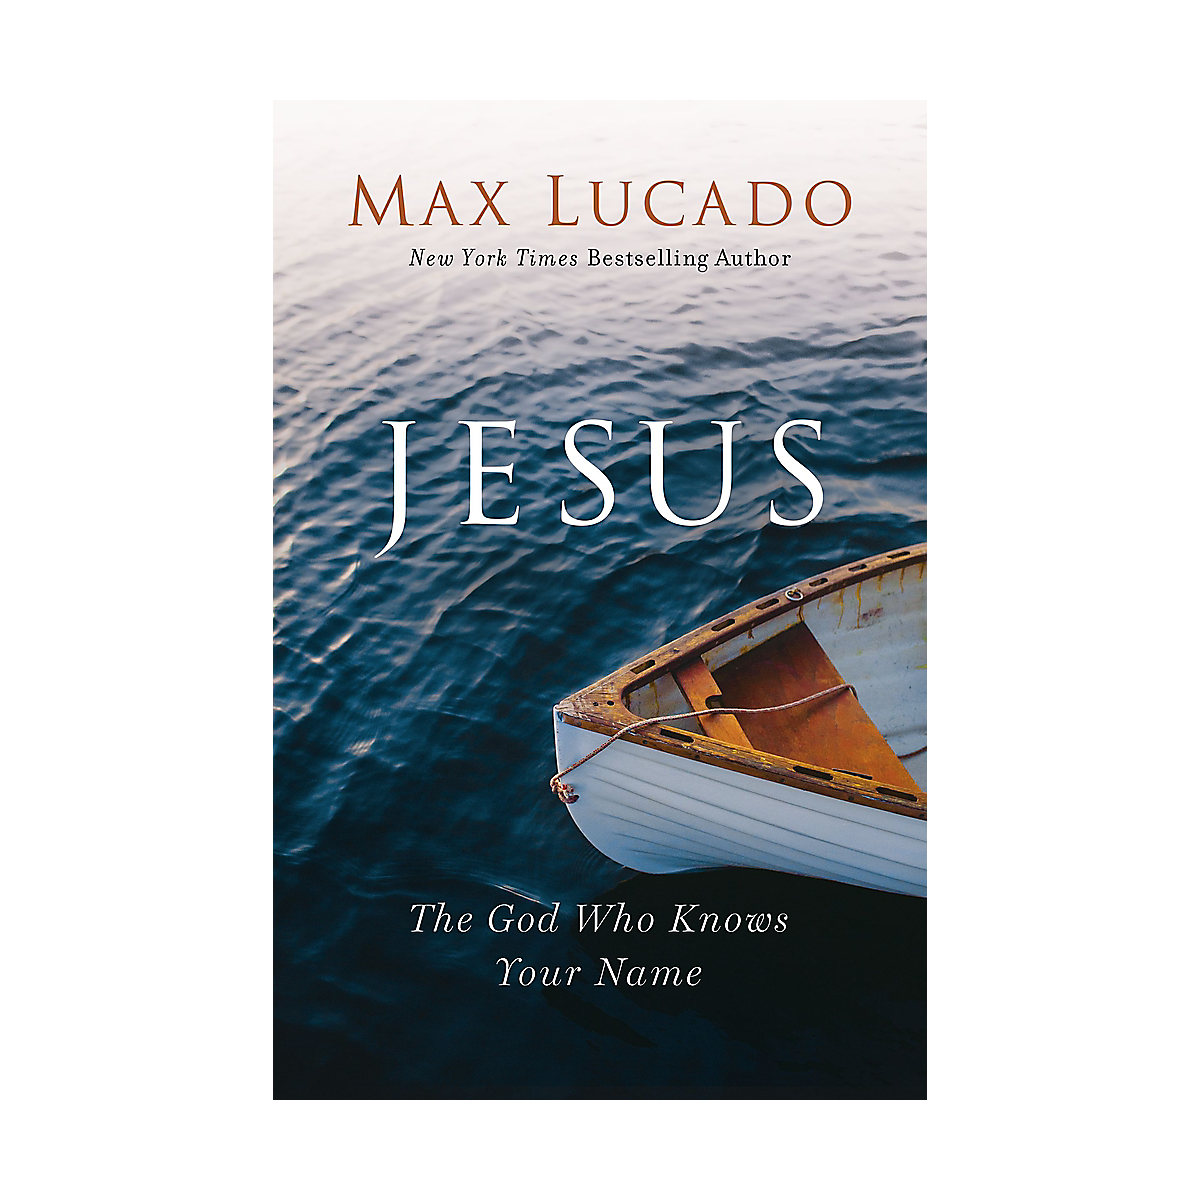 Jesus book by Max Lucado